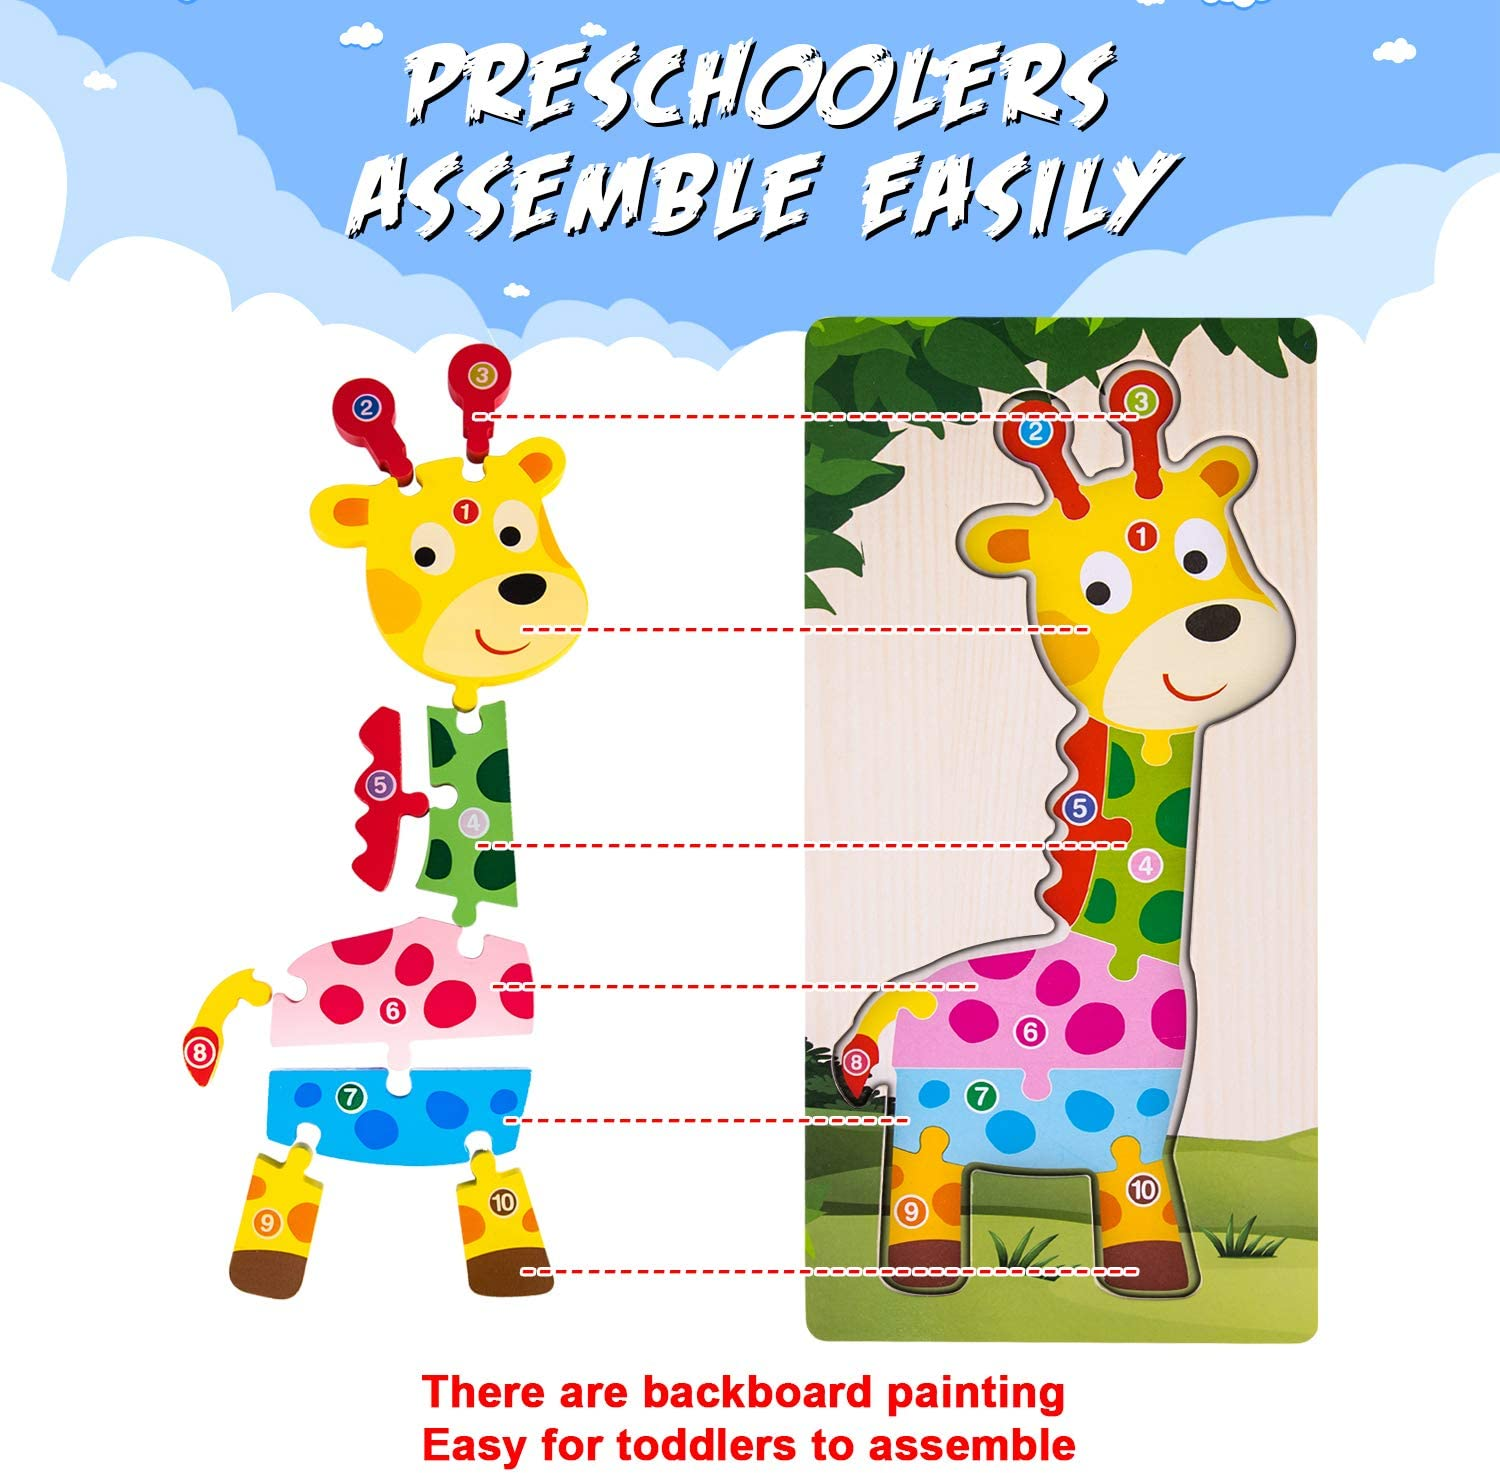 Wooden Toddlers Puzzle Montessori Toys Animal Block Big Size for Kids Learning Toys Gift for Age 1 2 3 4 Year Old Girls Boys Preschool Activities Educational Game Travel Toys